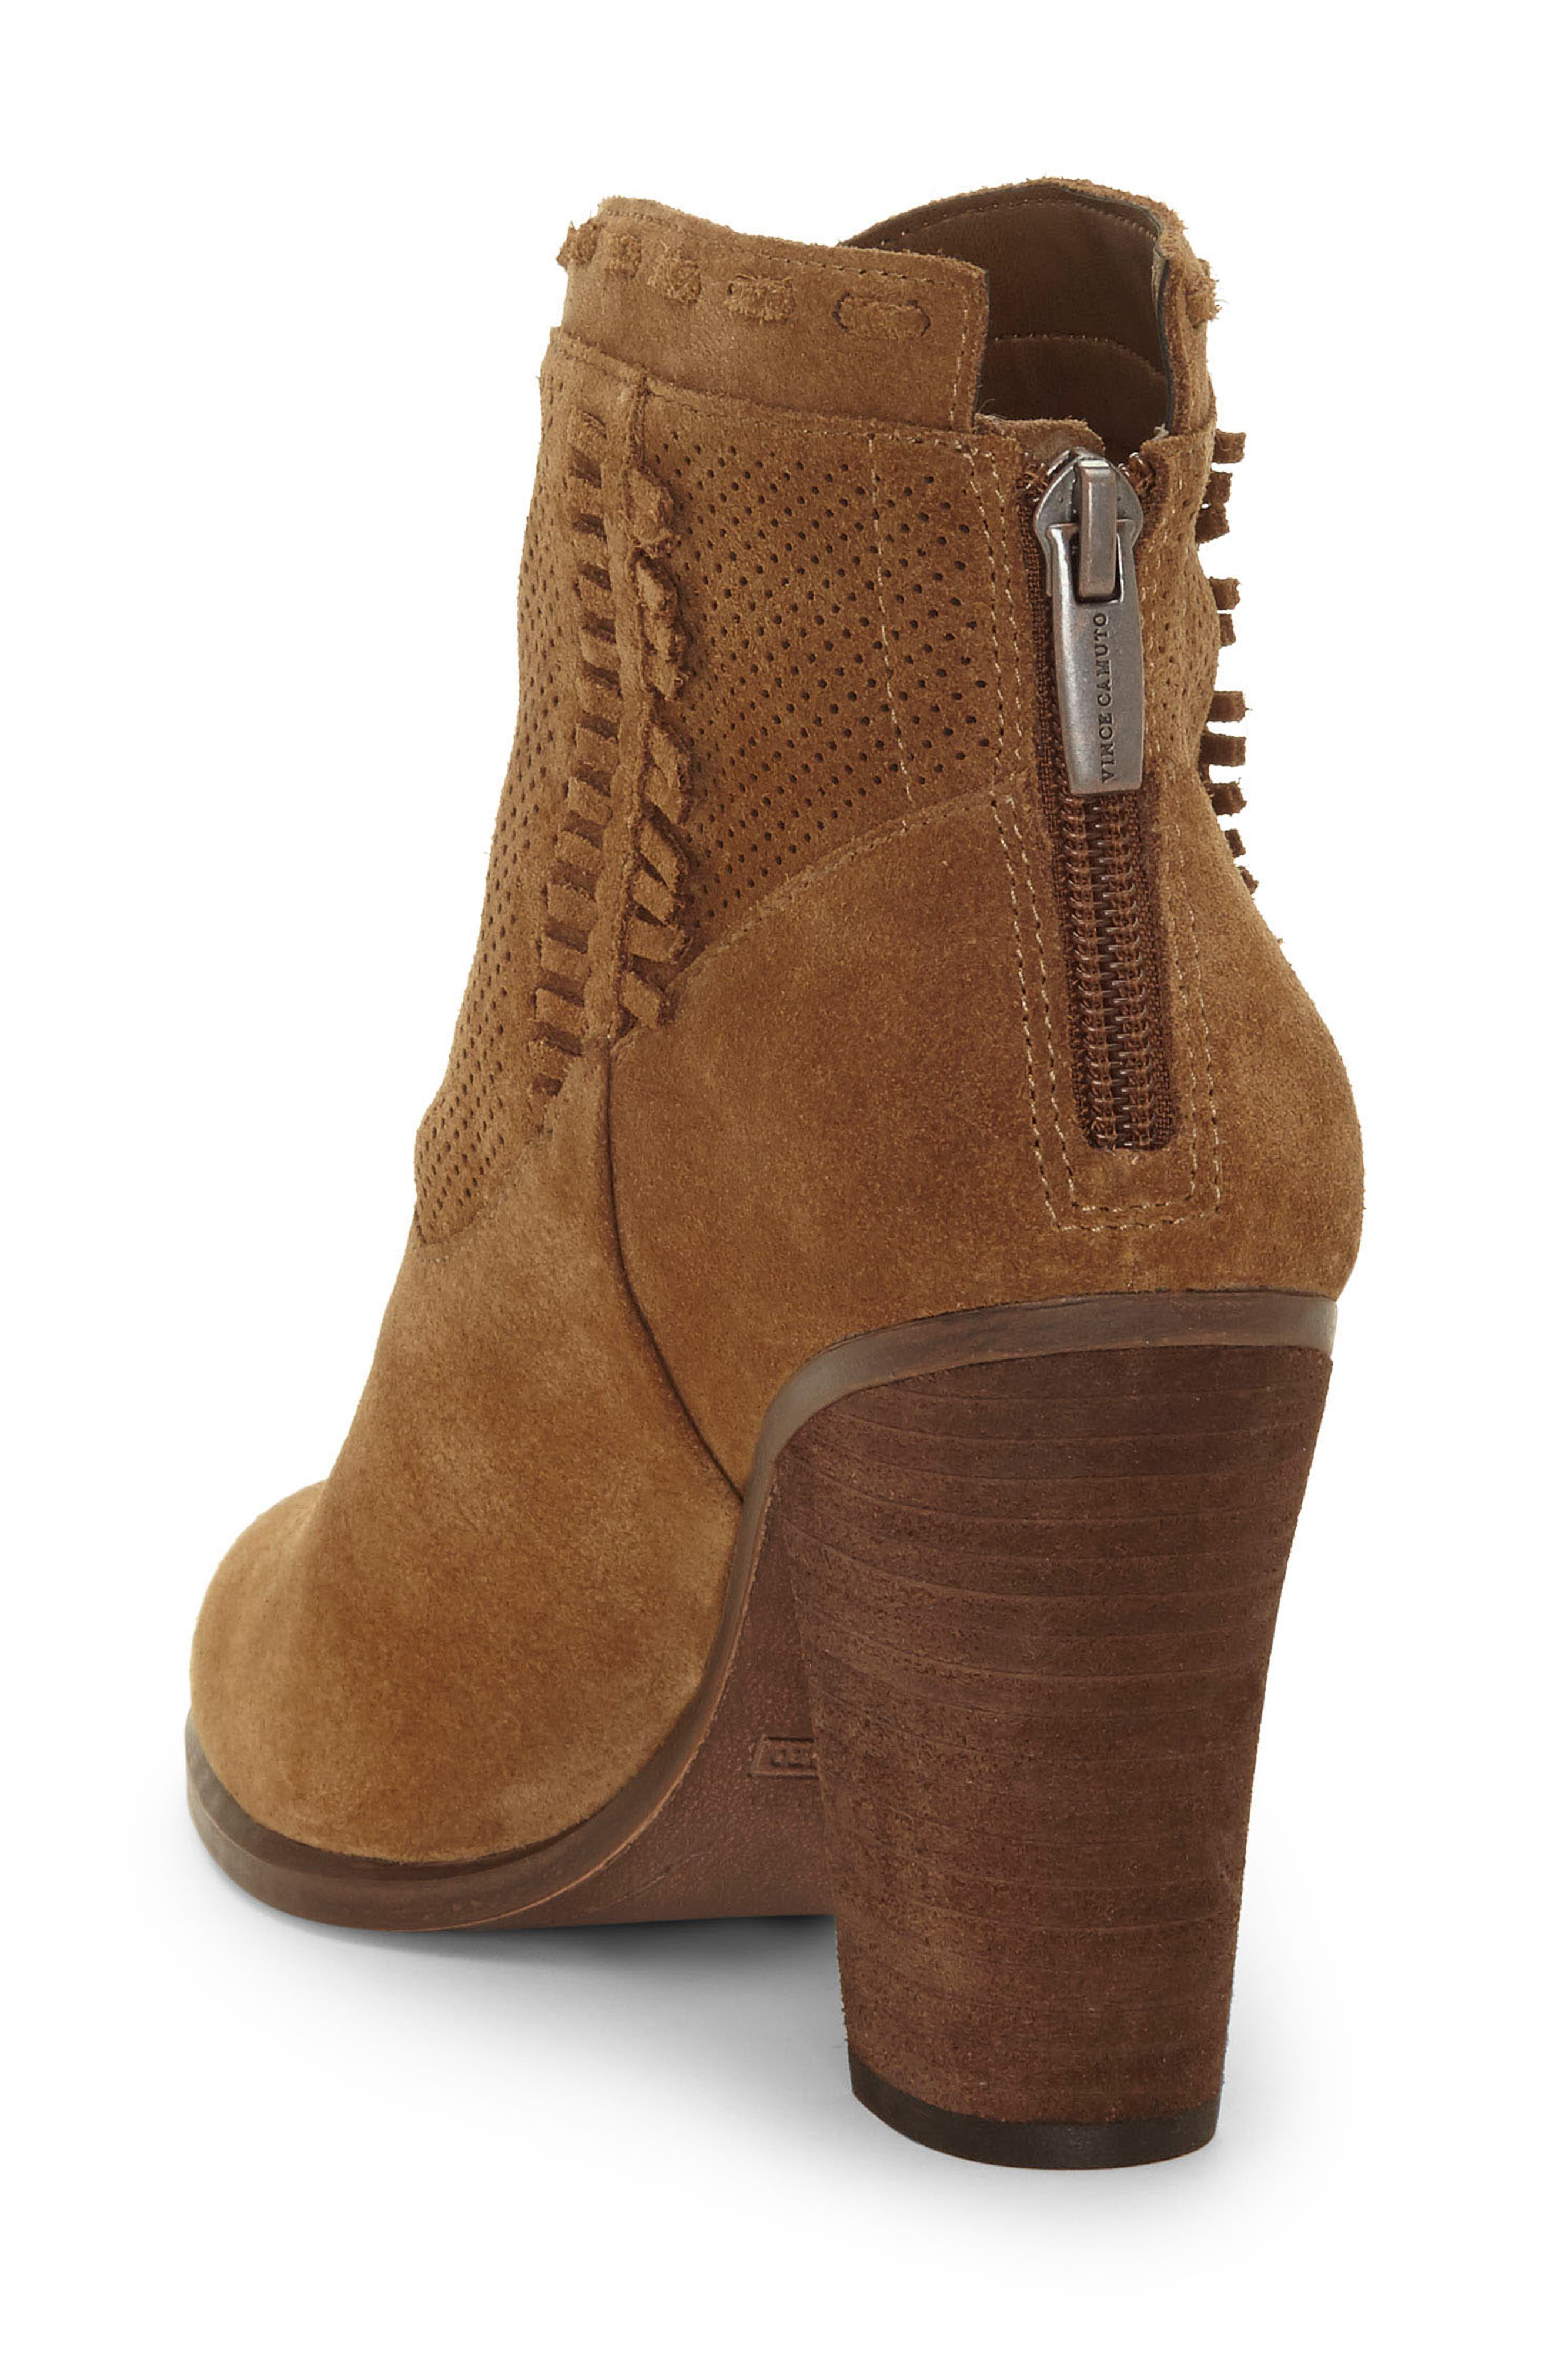 VINCE CAMUTO, Fretzia Perforated Boot, Alternate thumbnail 2, color, TREE HOUSE NUBUCK